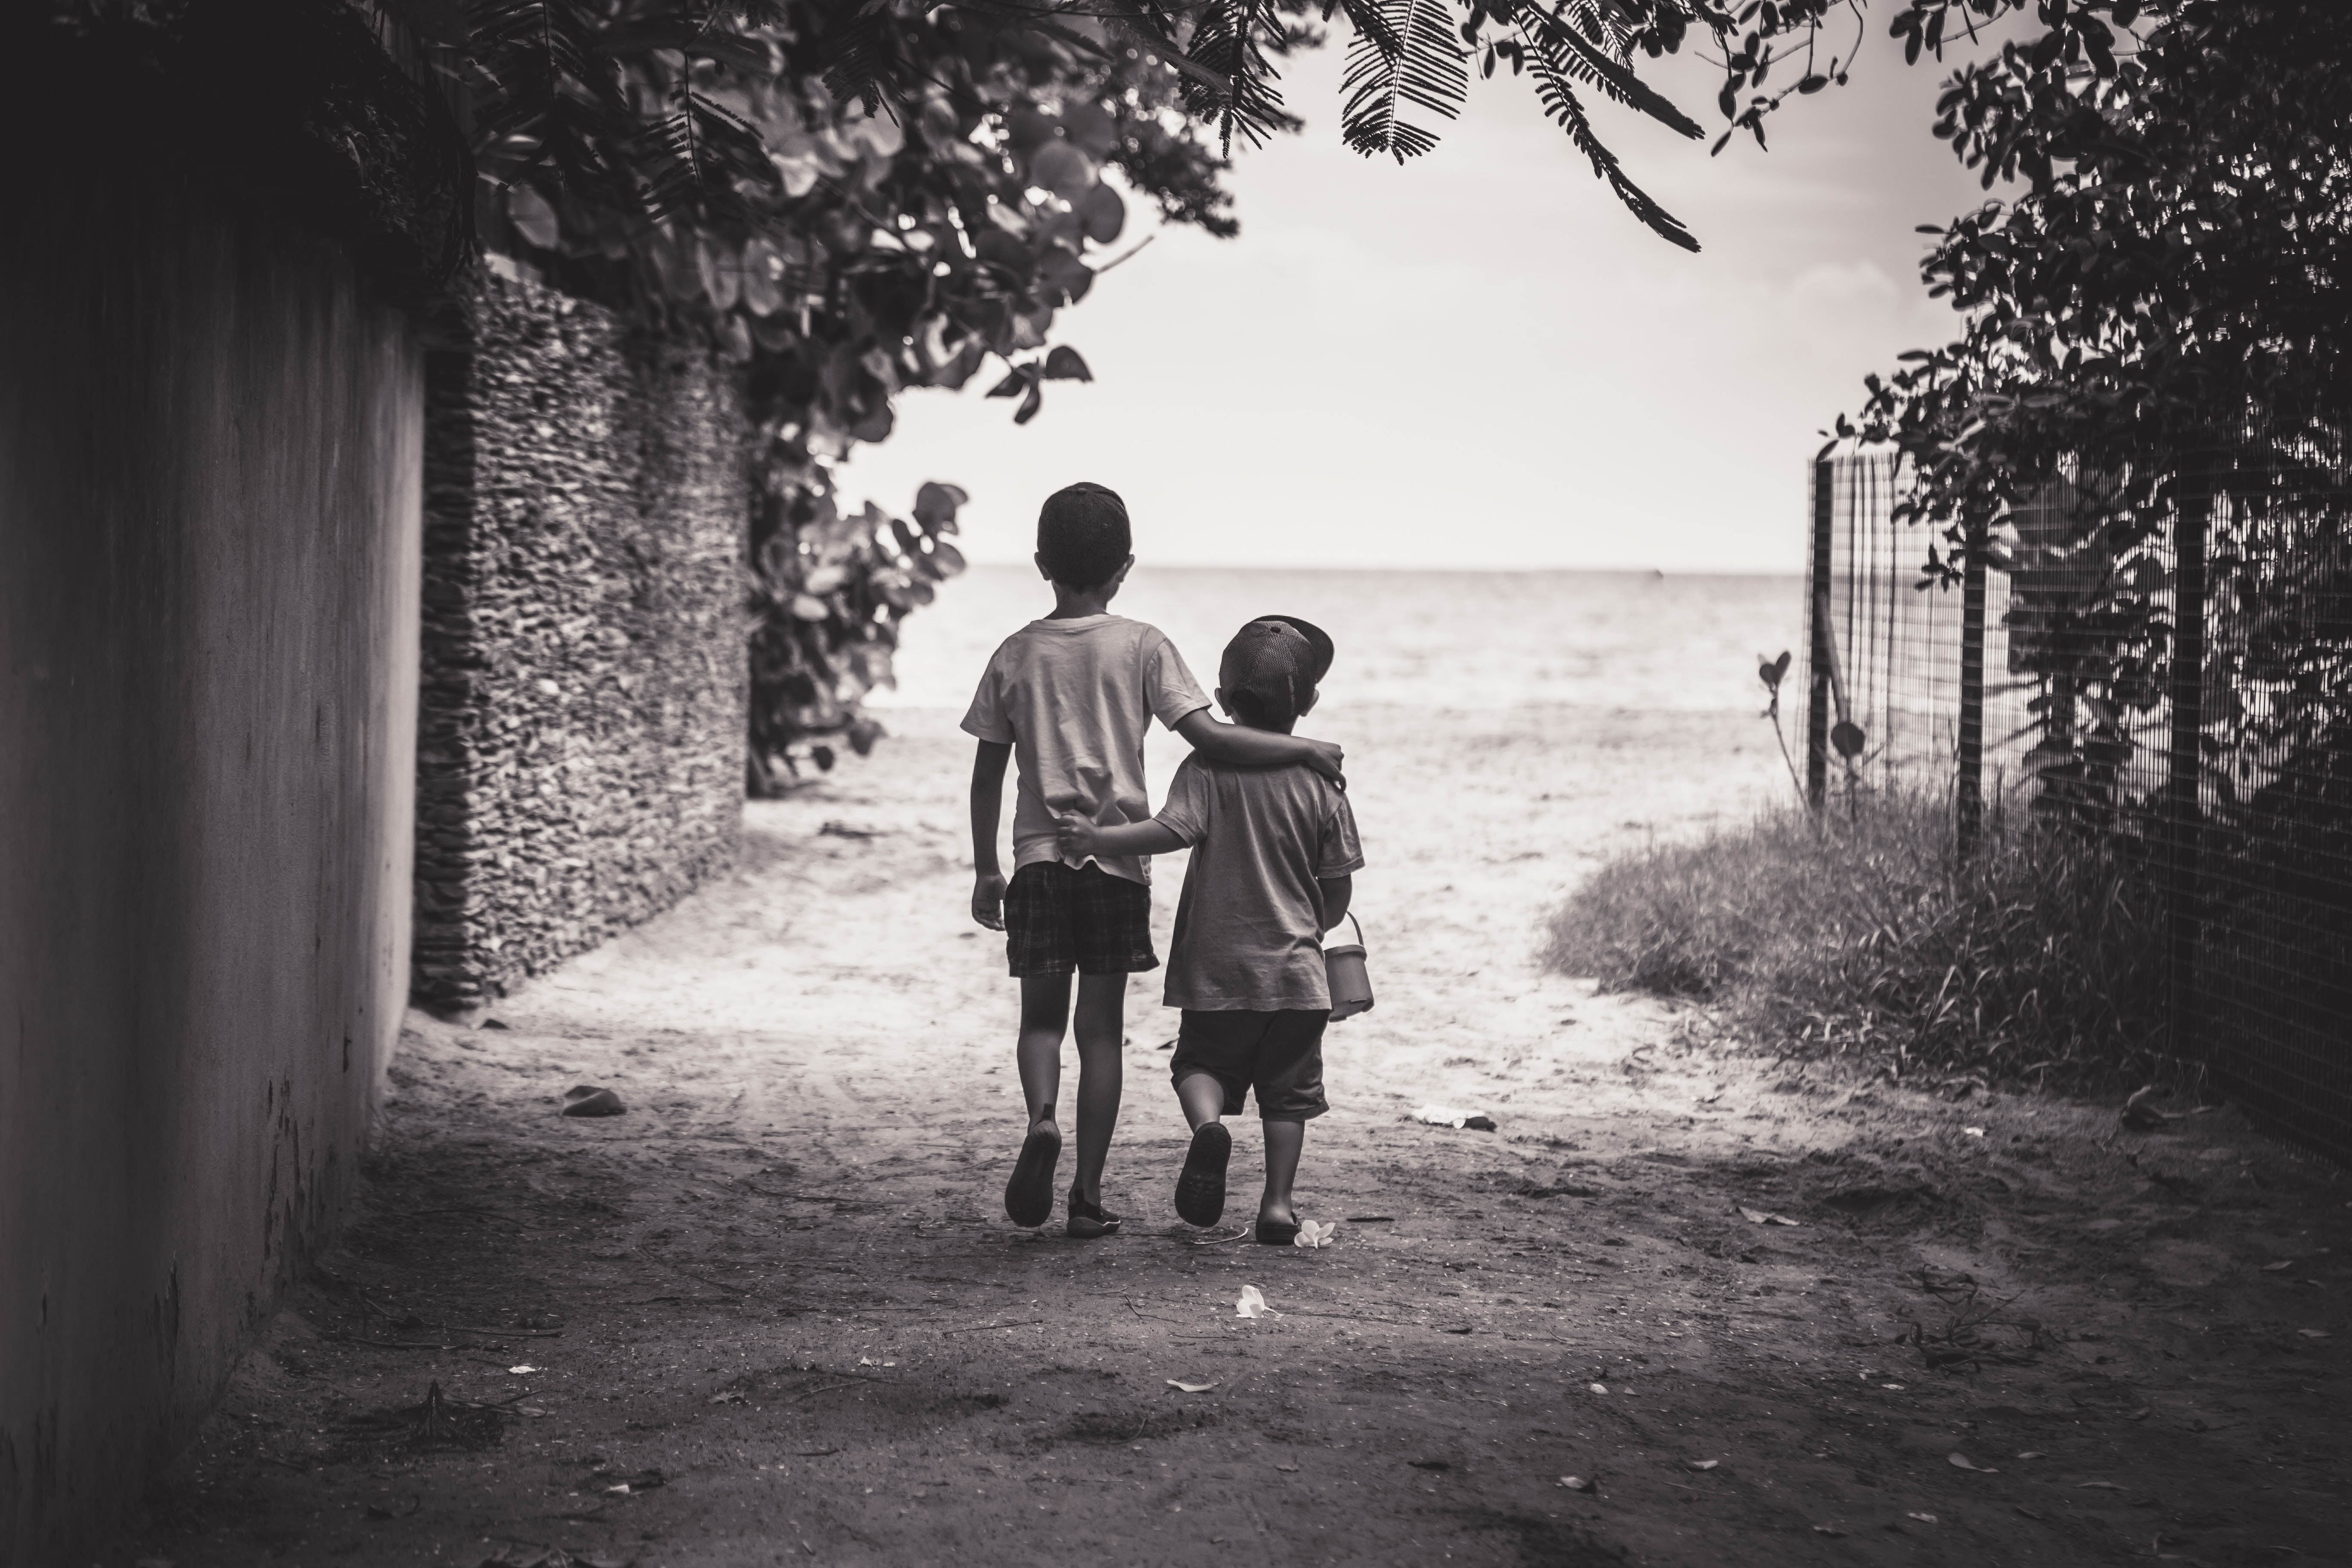 grayscale photography of child and toddler while walking